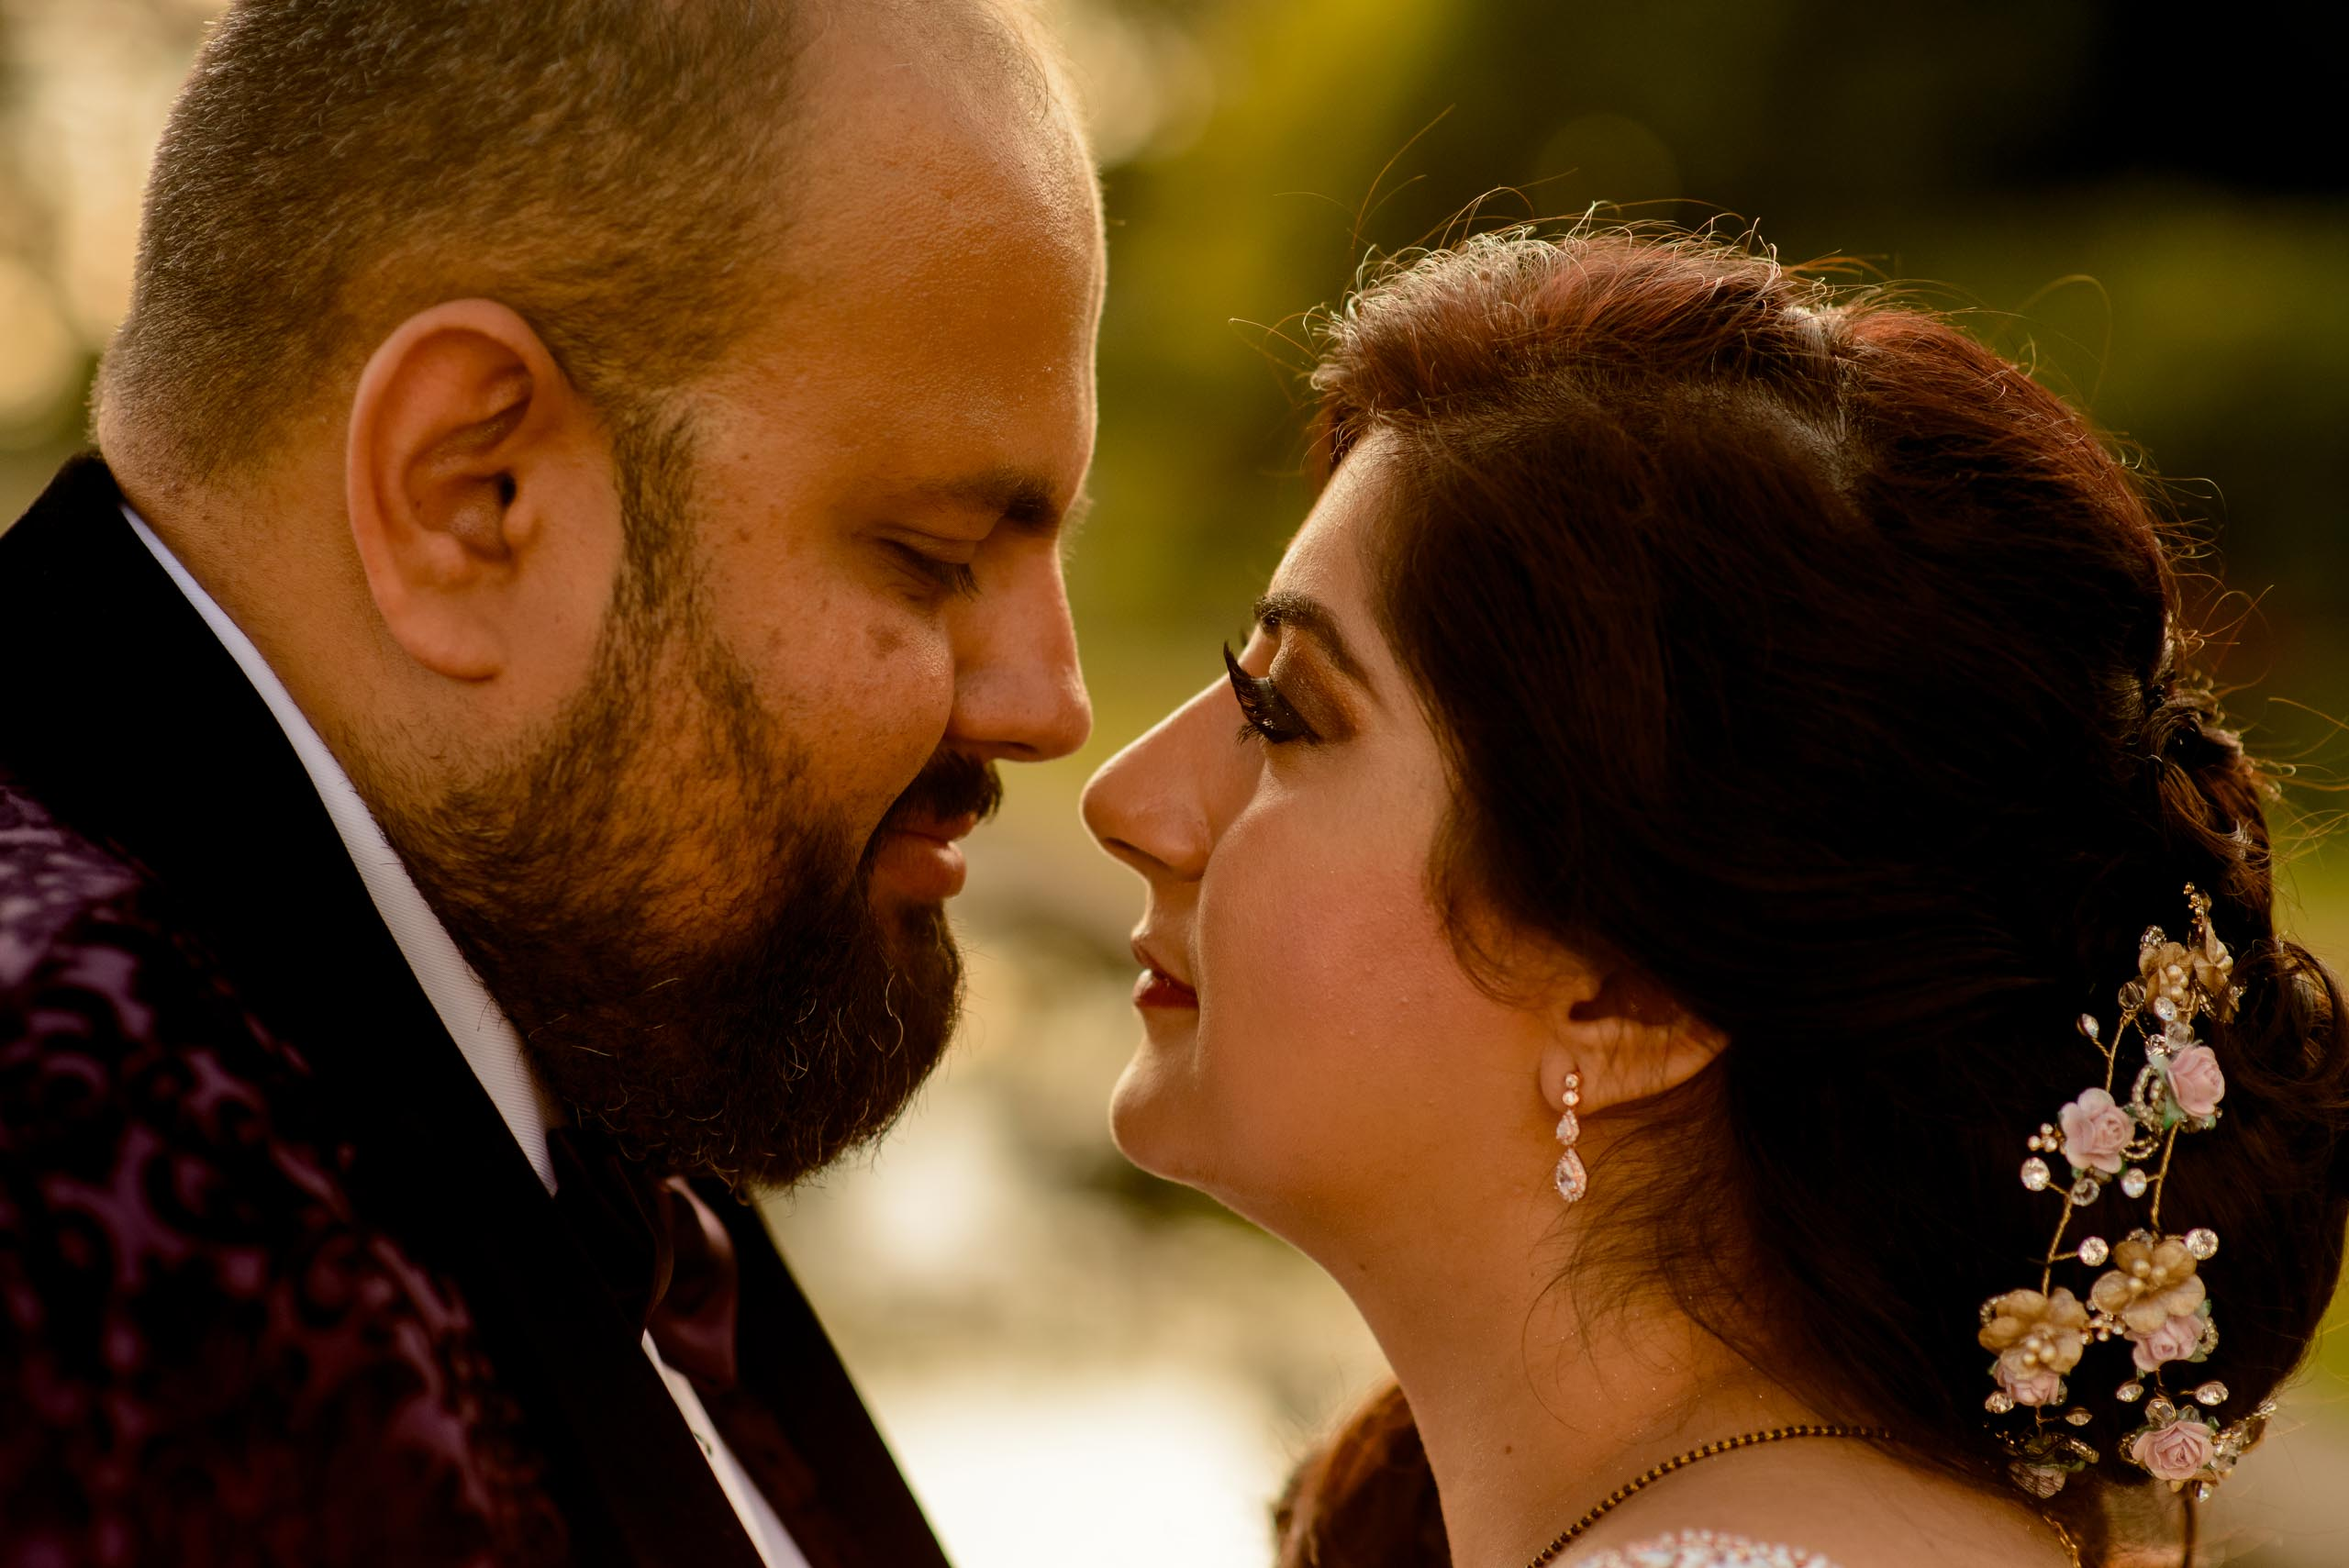 Amit&Amee-preview-edenmoments-16